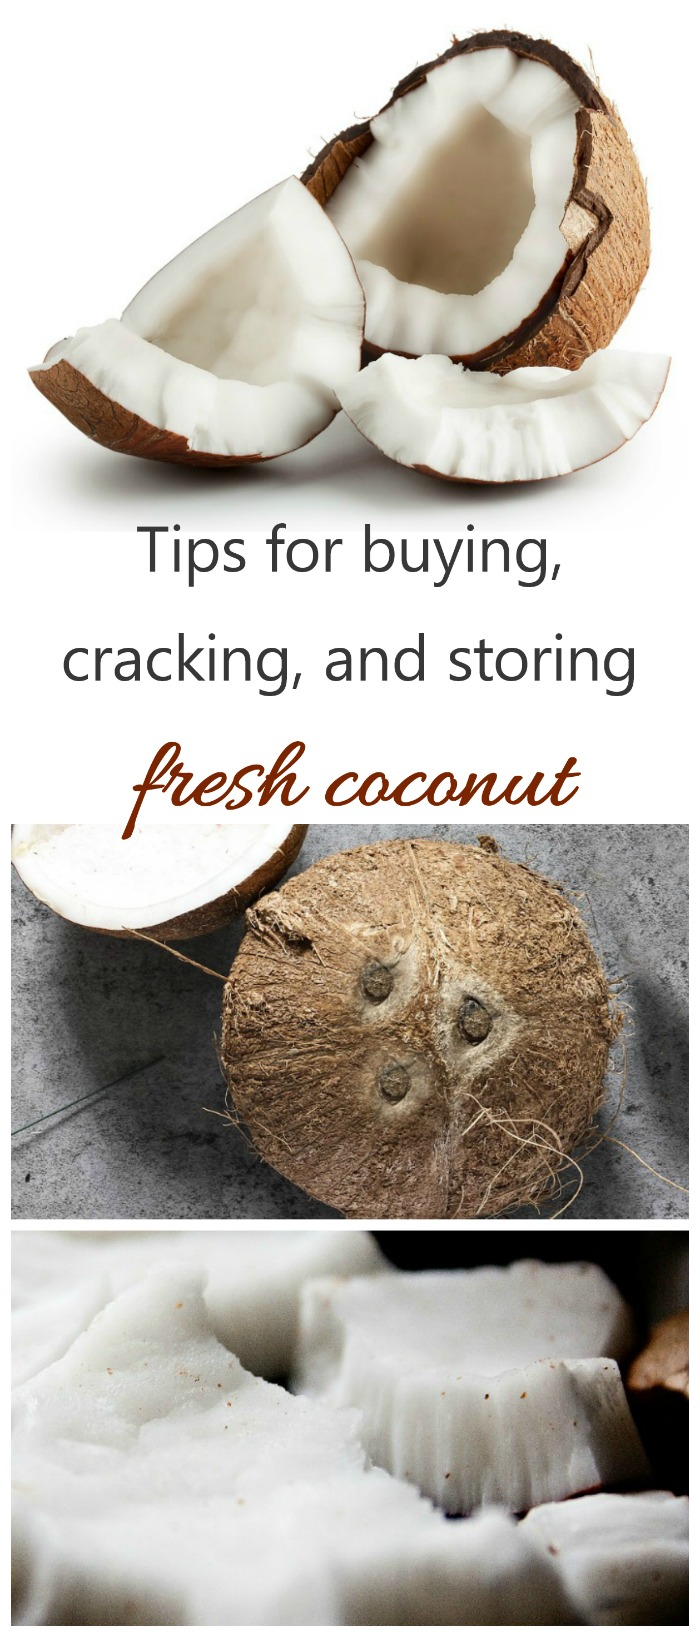 Tips for storing fresh coconut. How to purchase, open and use this tasty fruit